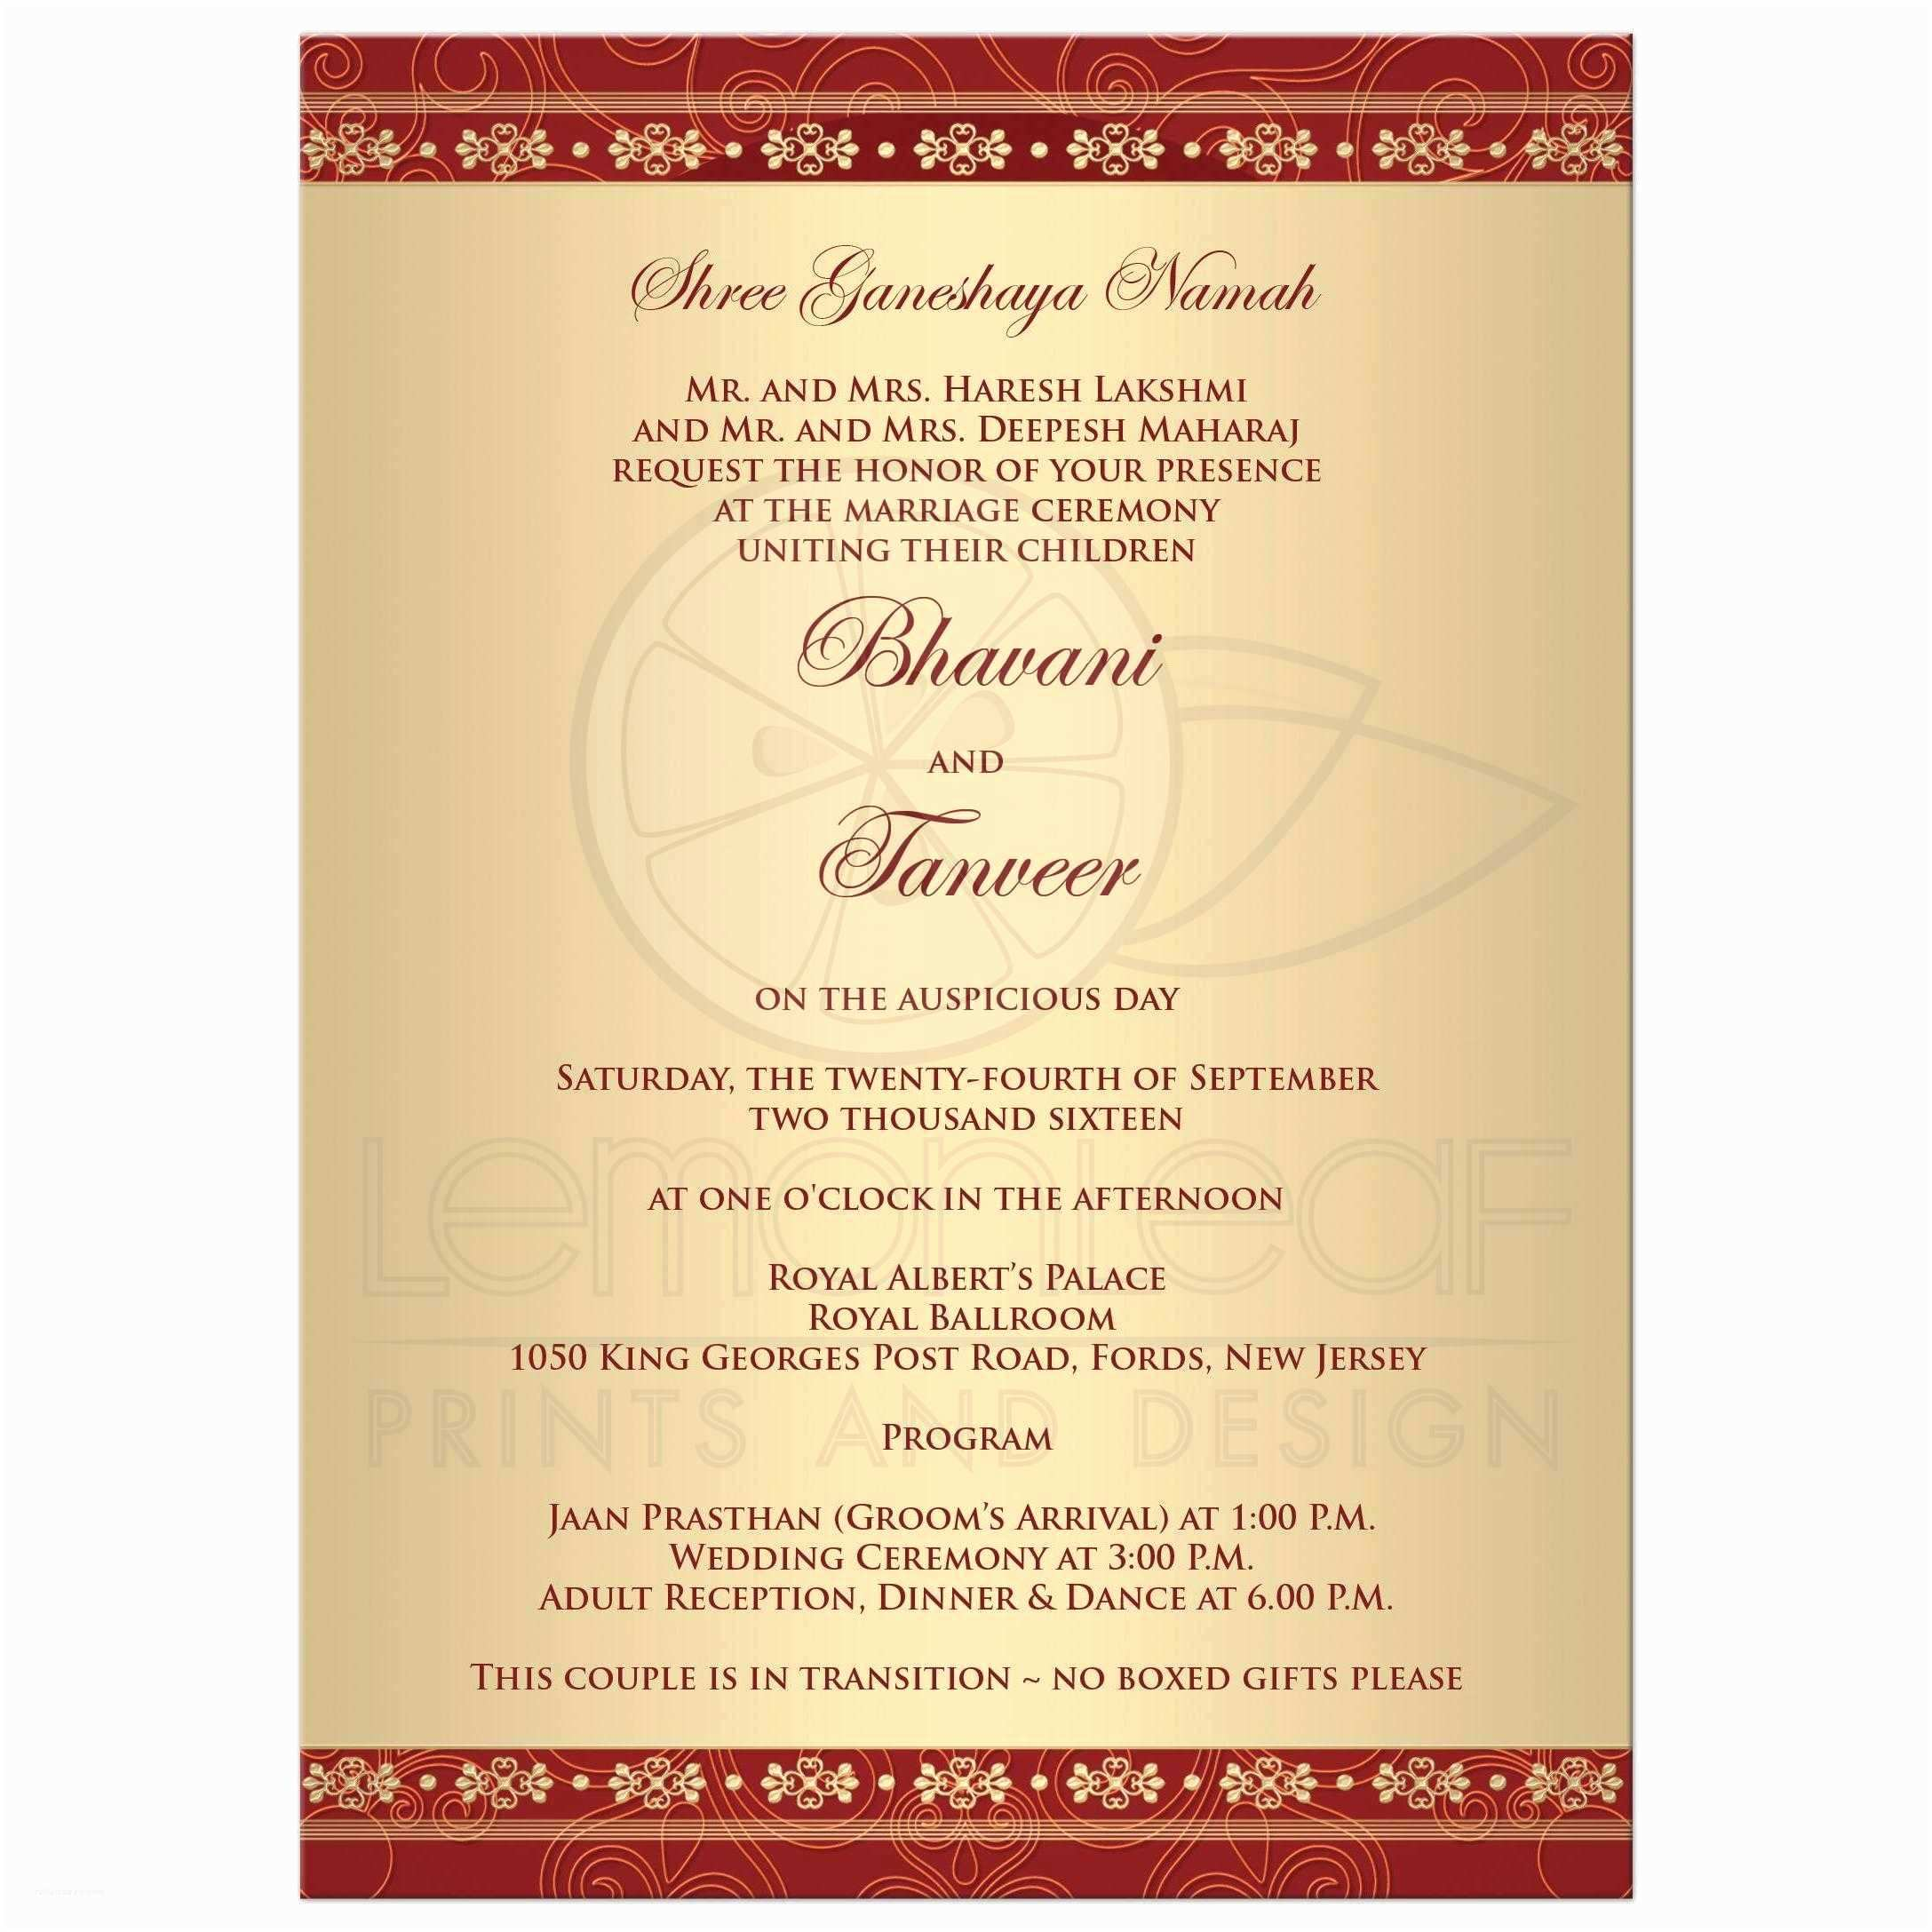 Indian Wedding Reception Invitation Wording Samples Bride Groom Wedding Invitation Indian Wedding Invitation Cards